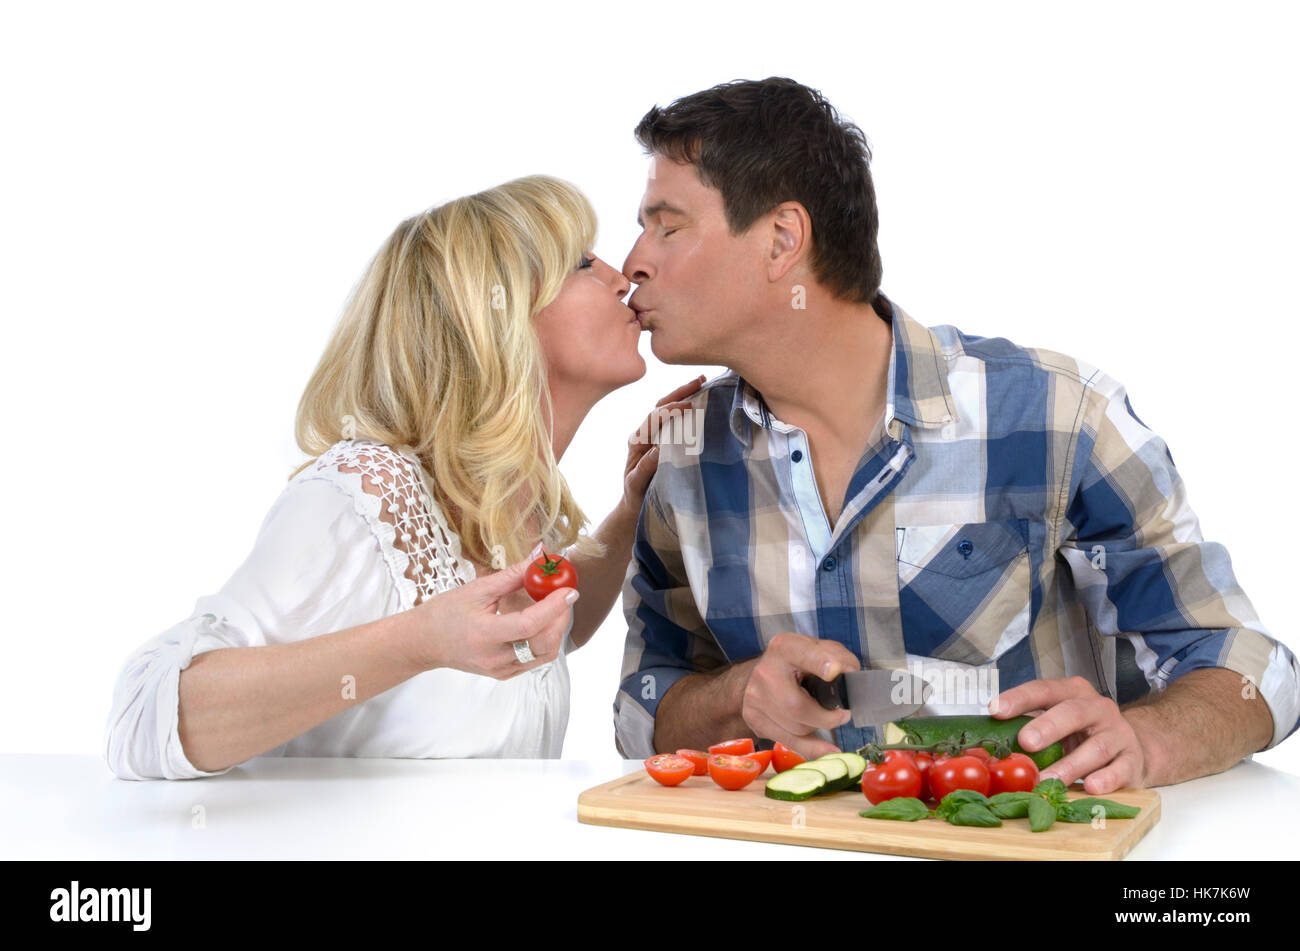 happy mature couple kissing while cooking stock photo: 132319793 - alamy